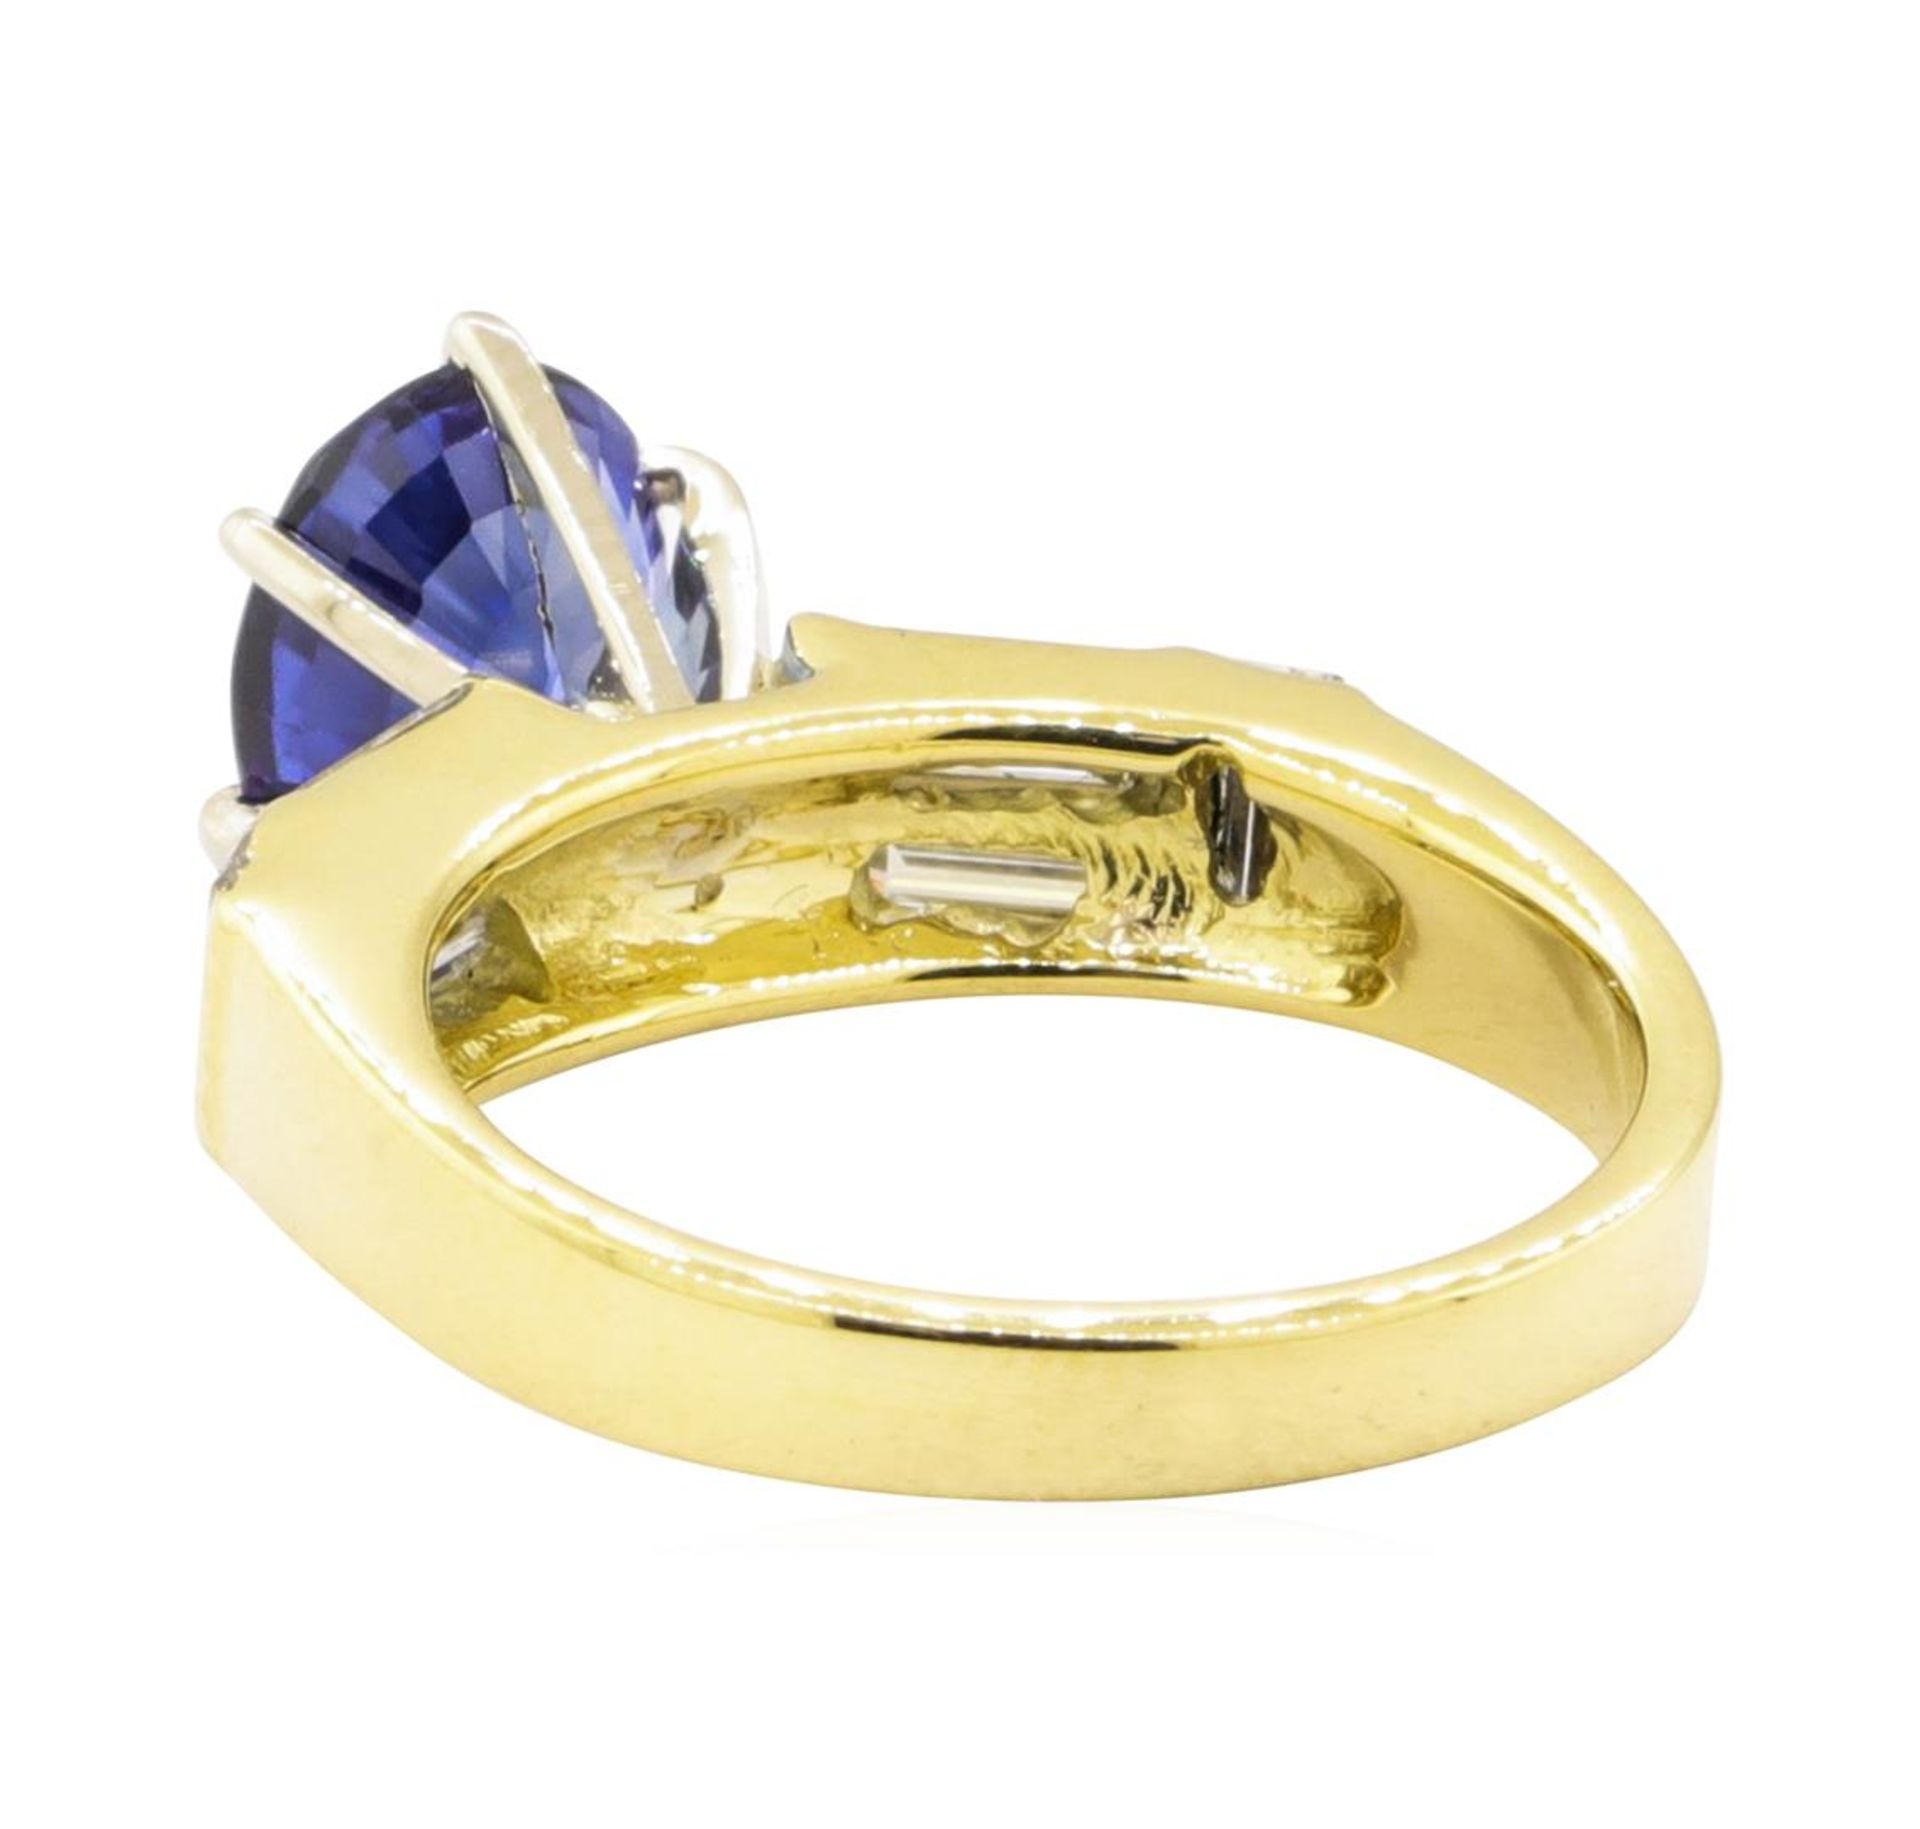 2.93 ctw Blue Sapphire And Diamond With Elevated Shoulders - 18KT Yellow Gold - Image 3 of 5